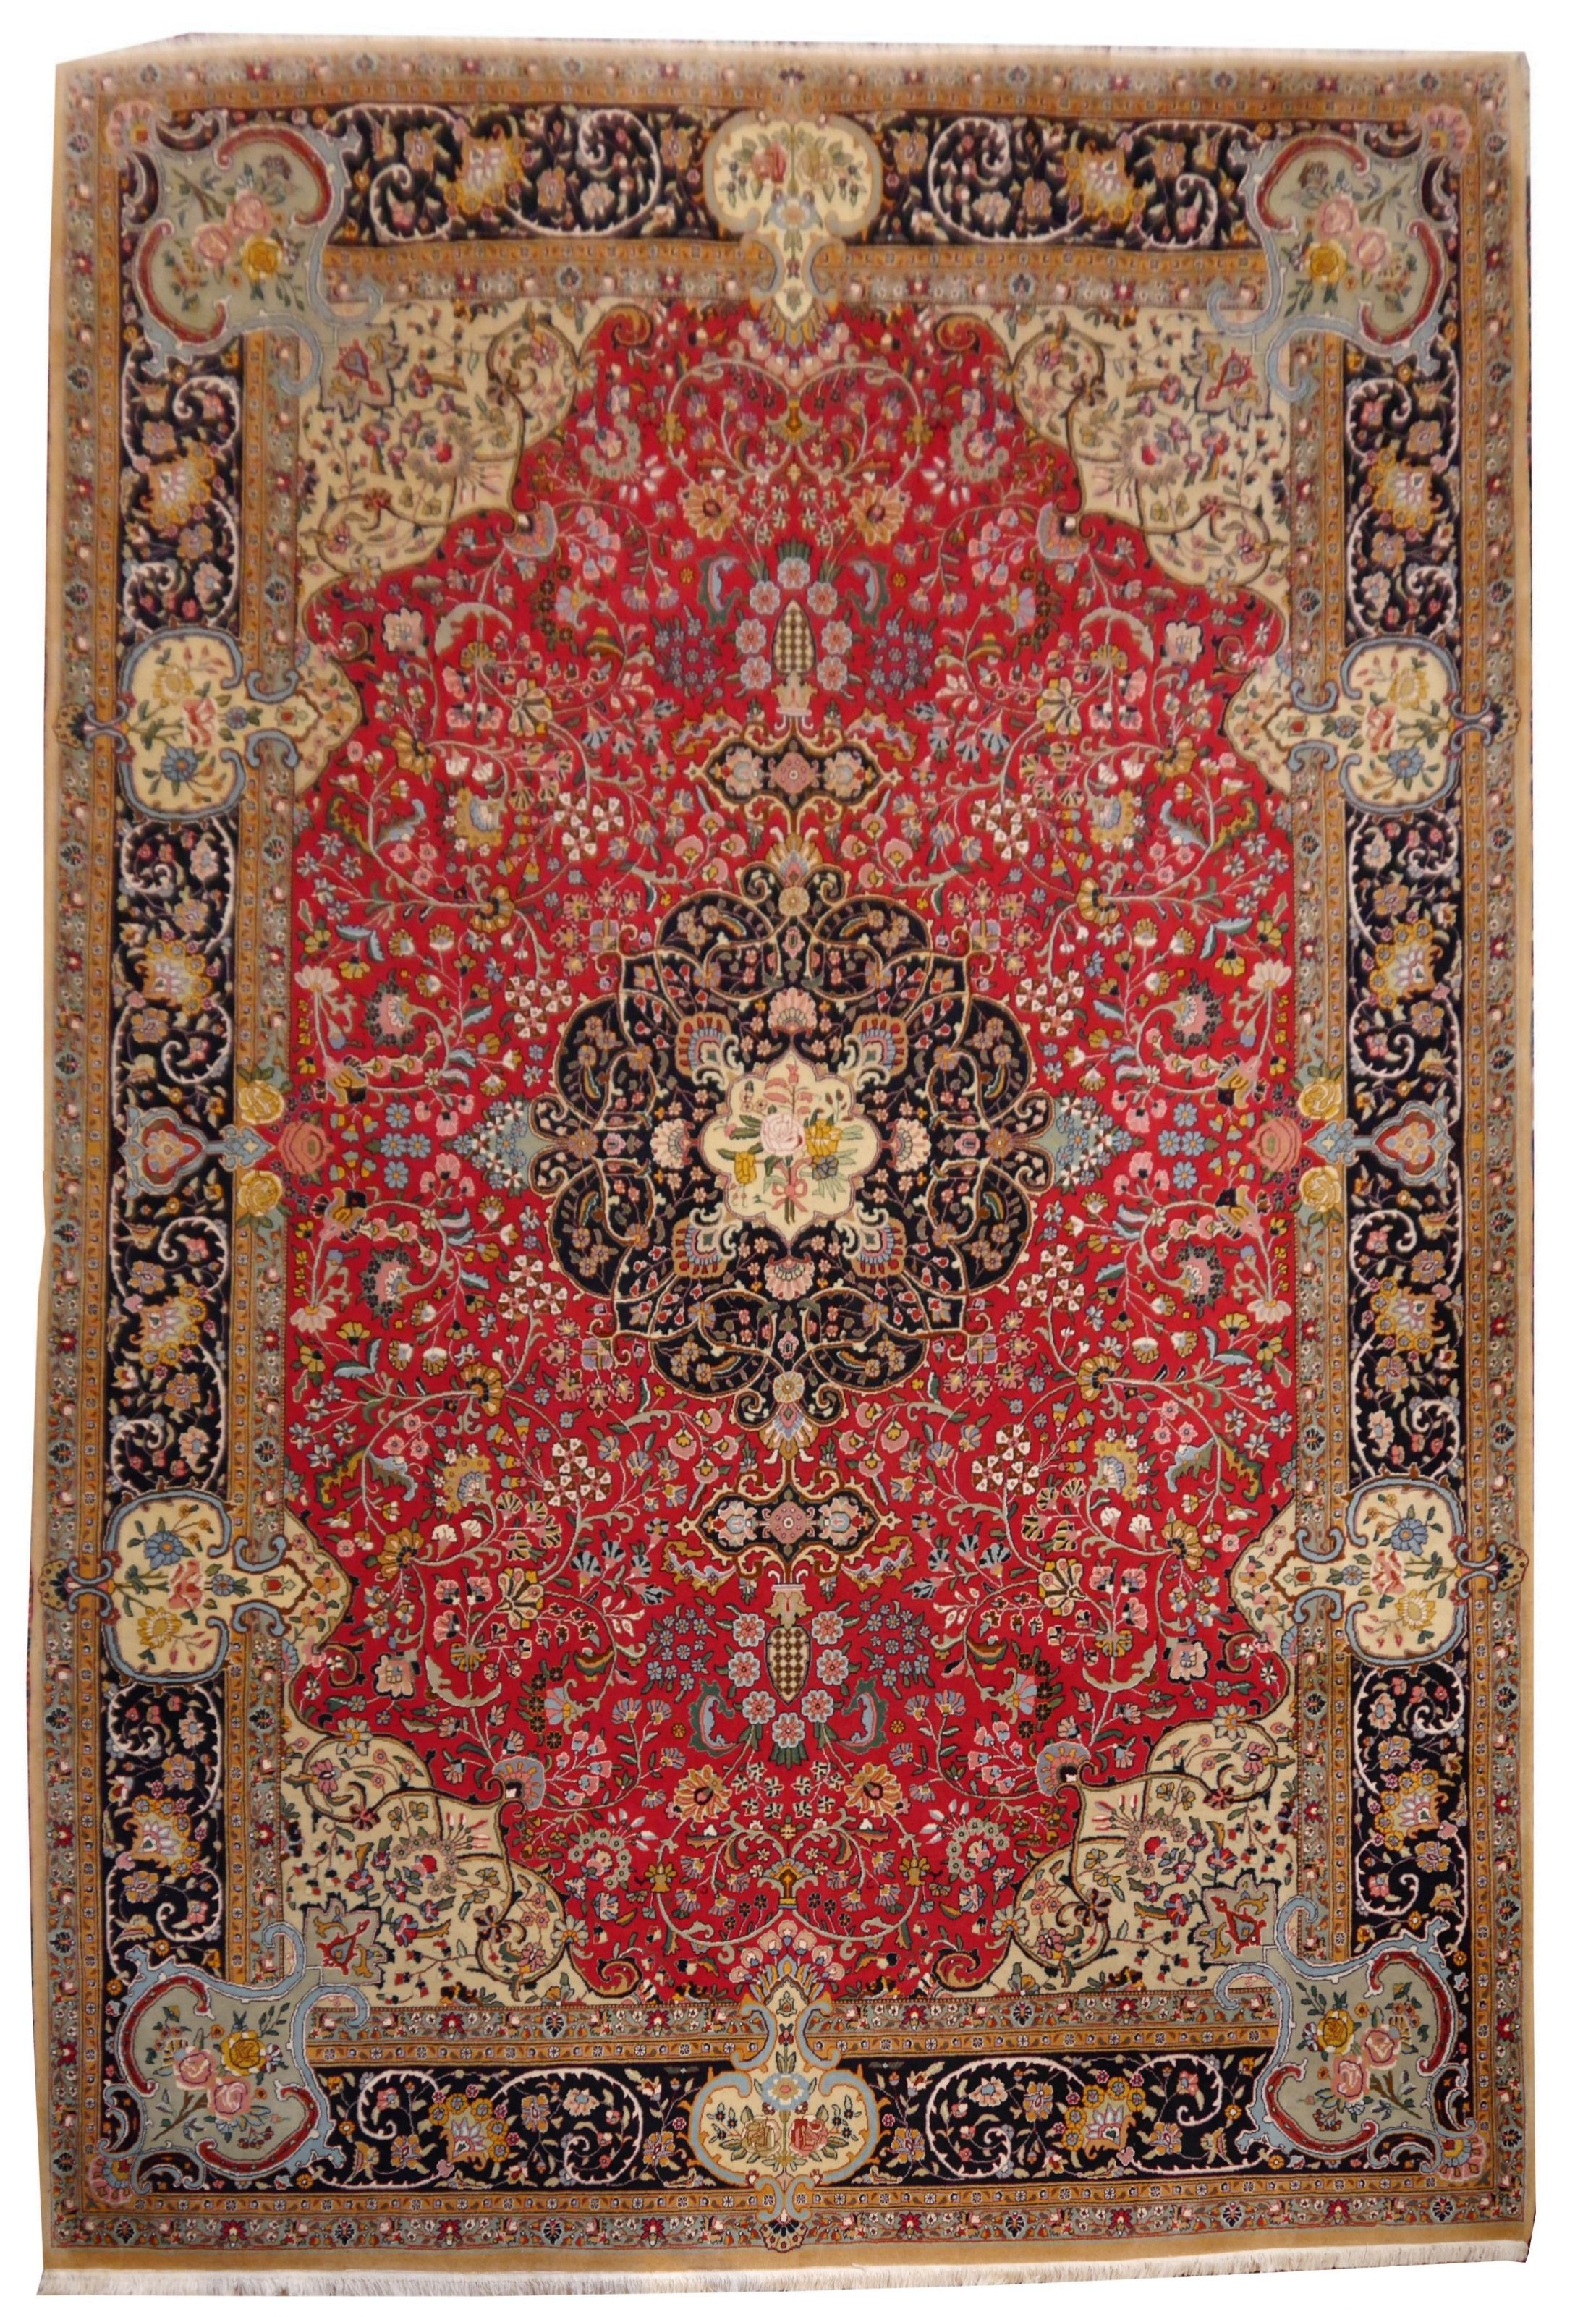 Abc Teppiche 13825 Tabriz Rug China 11 5 X 8 2 Ft 350 X 250 Cm The Rug